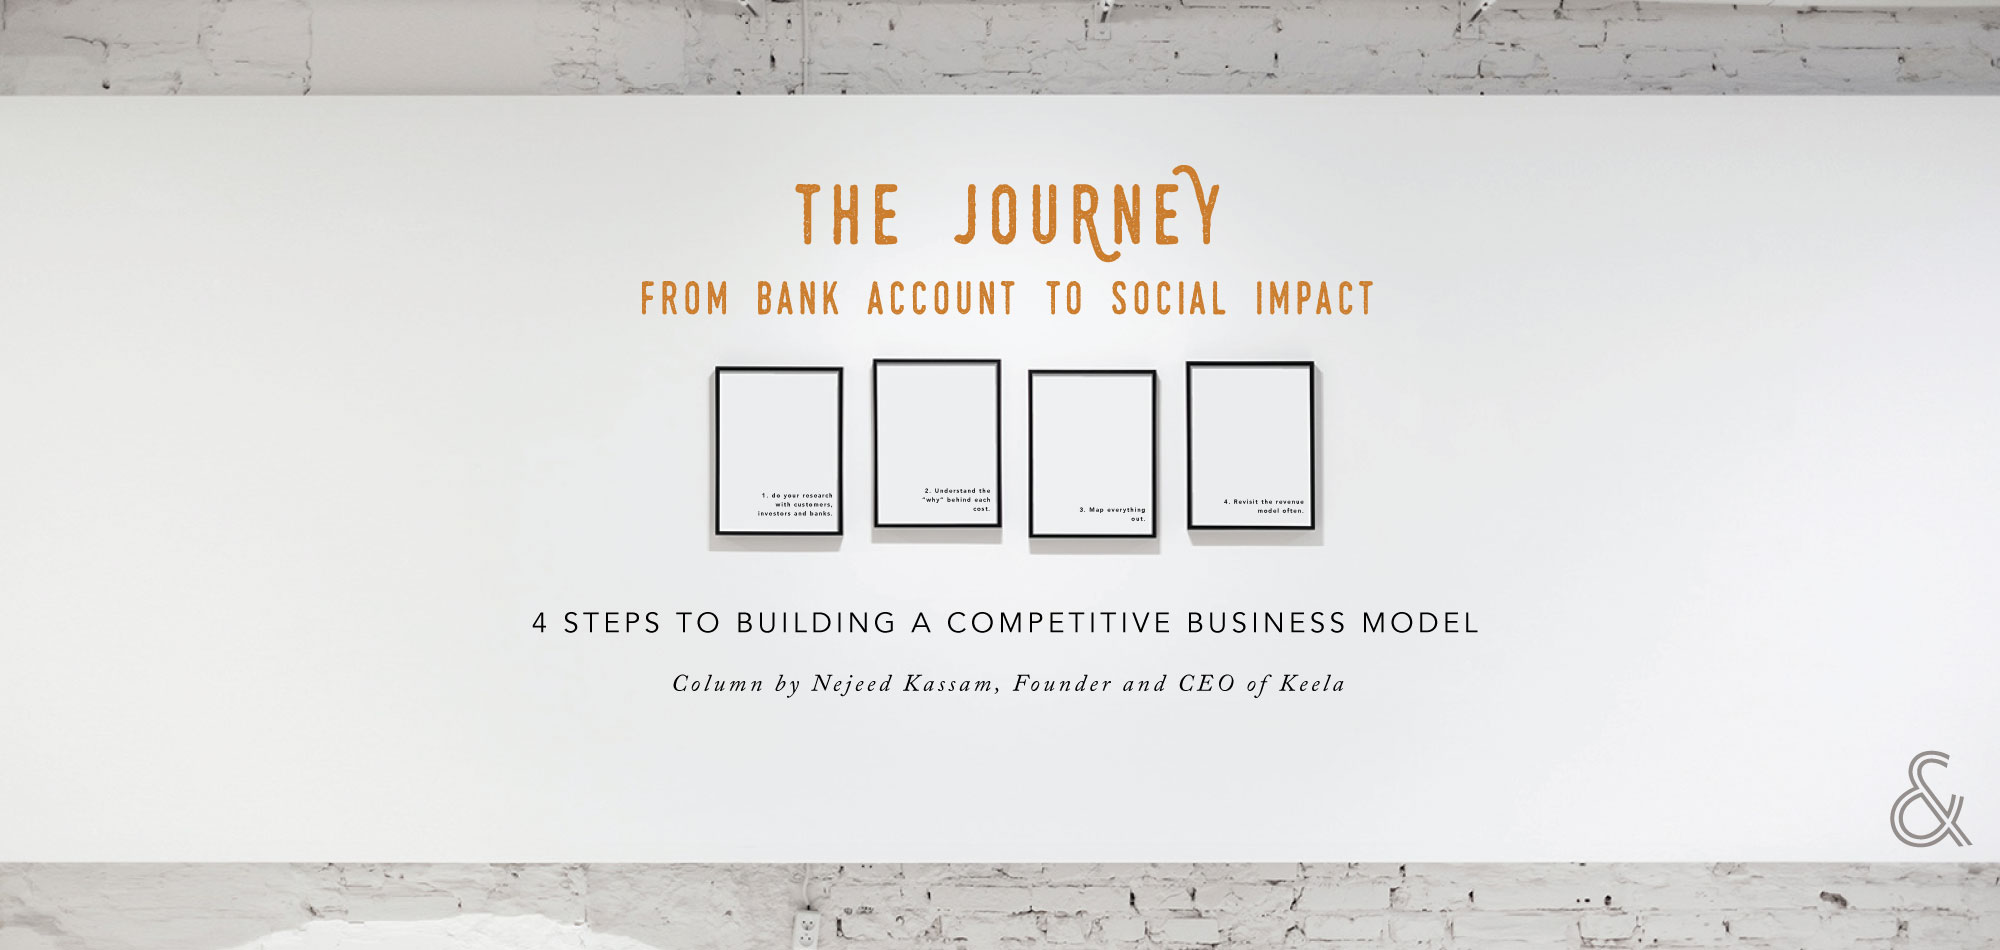 The Journey from Bank Account to Social Impact: 4 Steps to